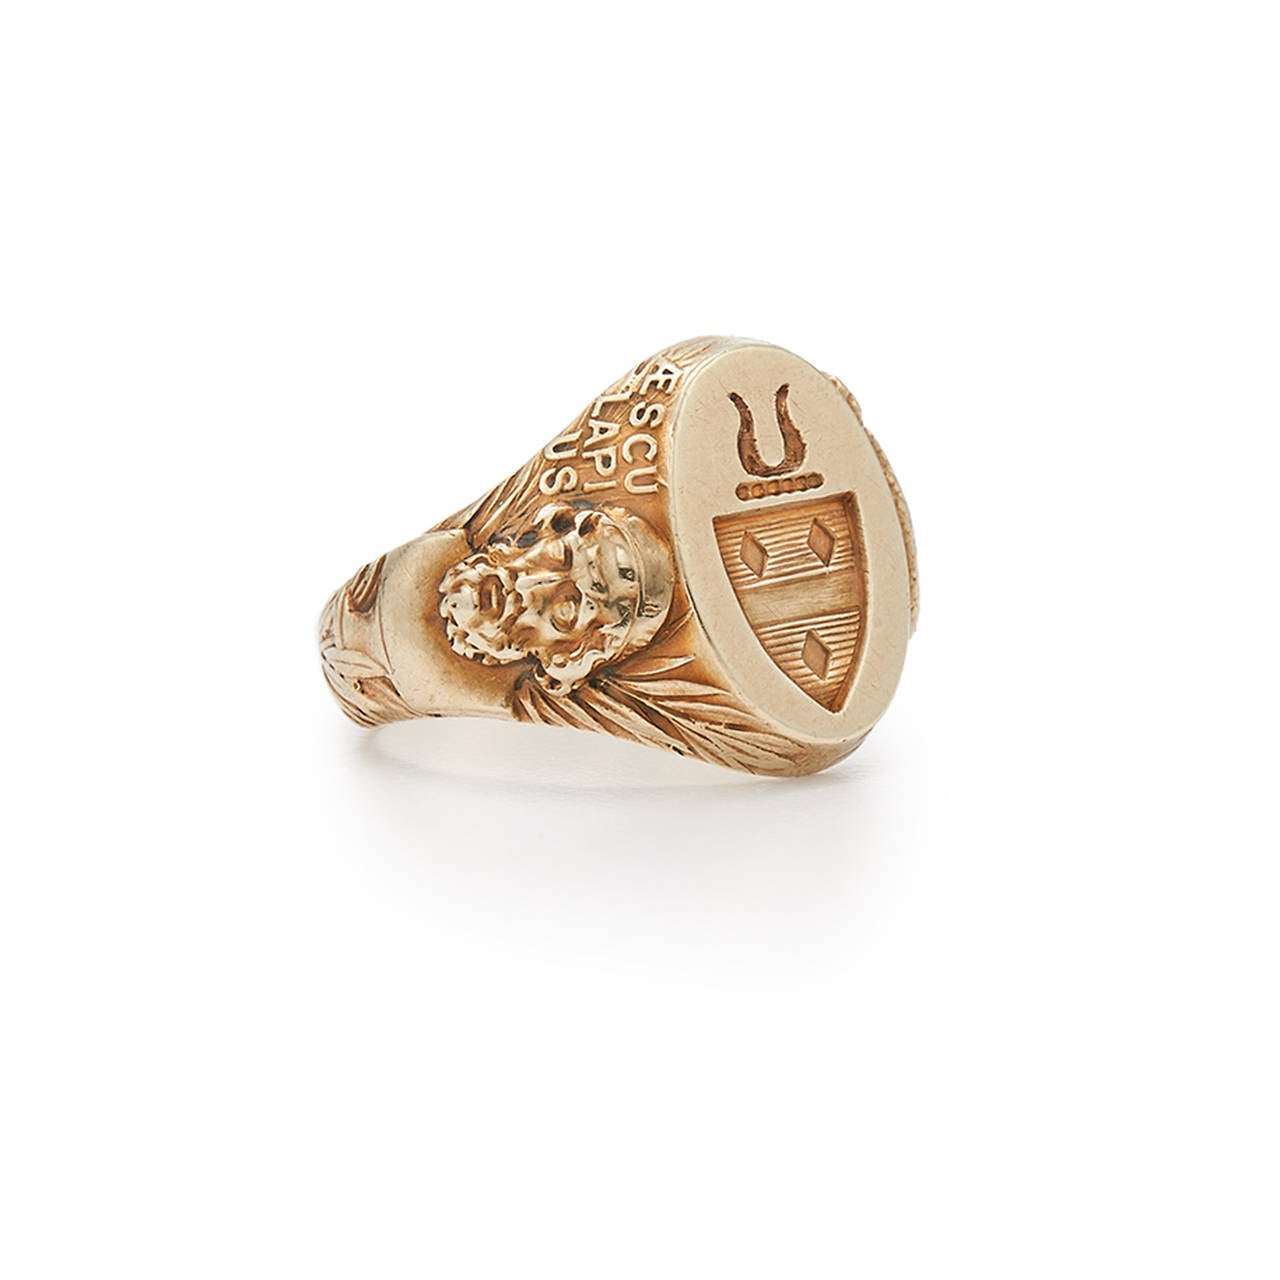 1900s and co engraved gold signet ring at 1stdibs